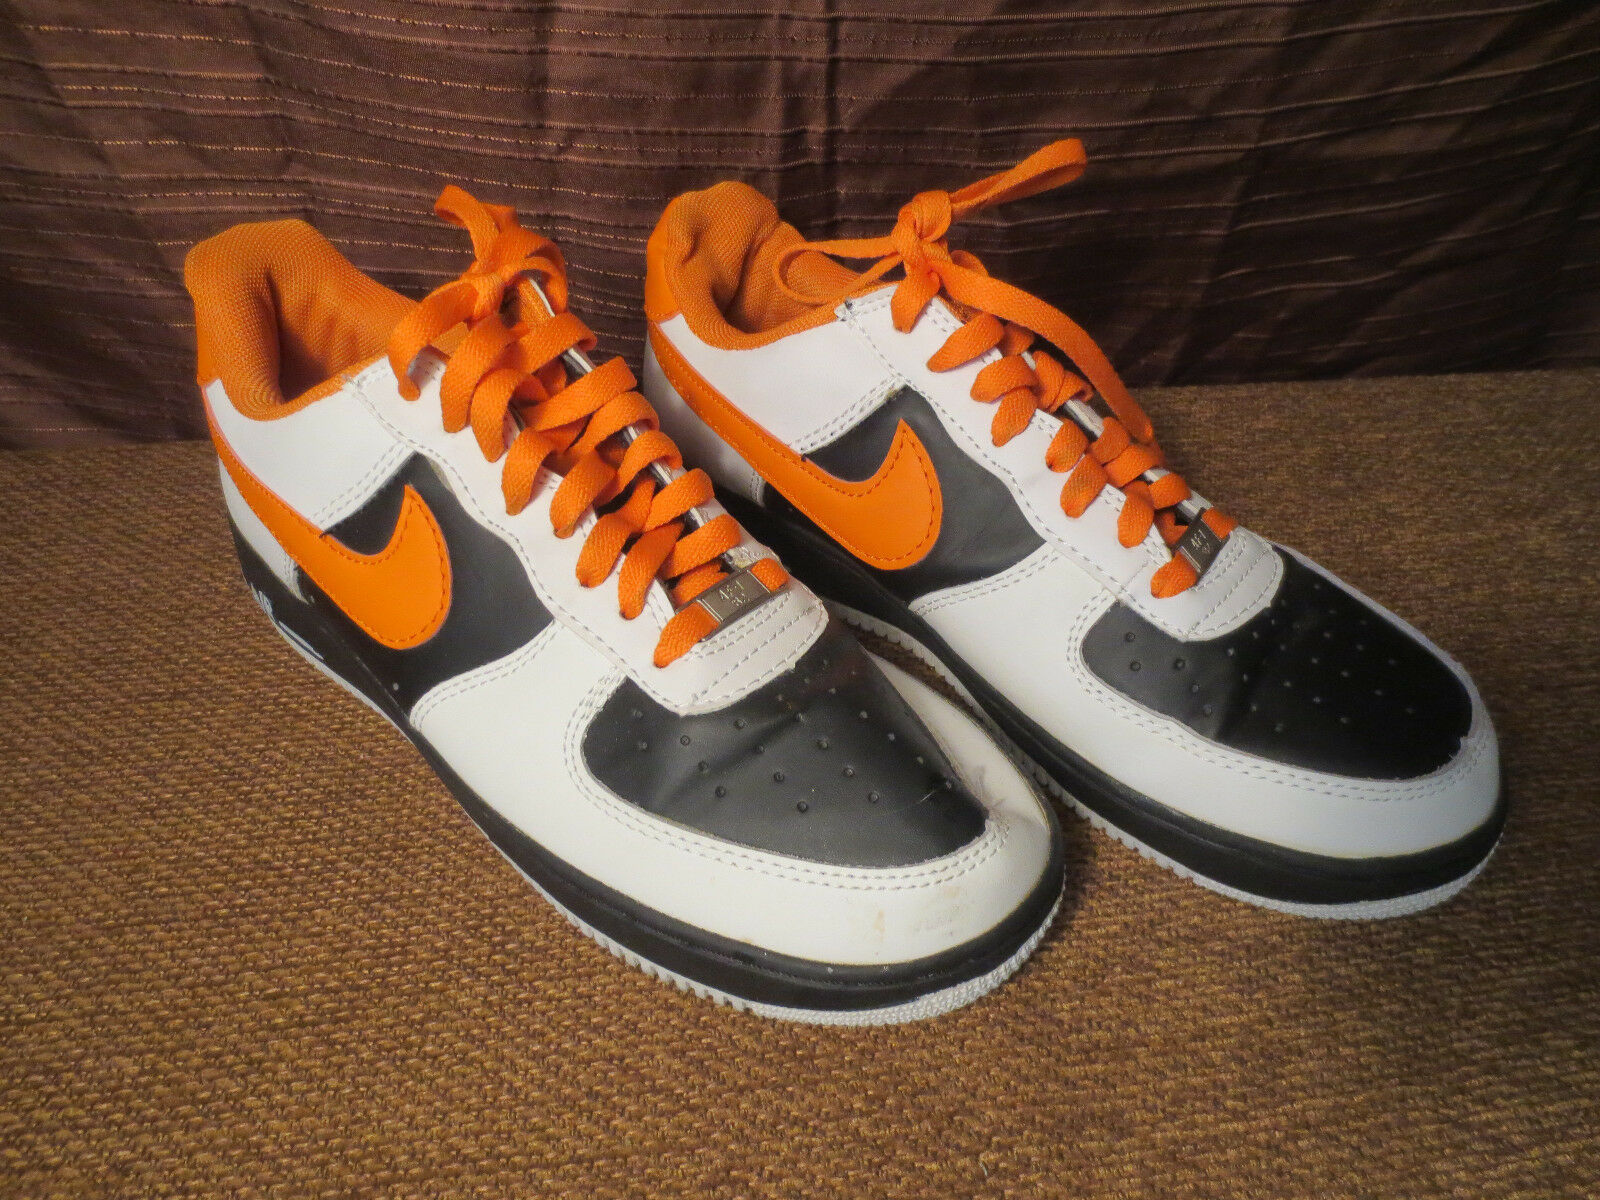 separation shoes 3cd4a 6bf65 Nike Air Air Air Force 1 306353-180 University of Tennessee Vols Volunteers  Shoes US 9 d38406